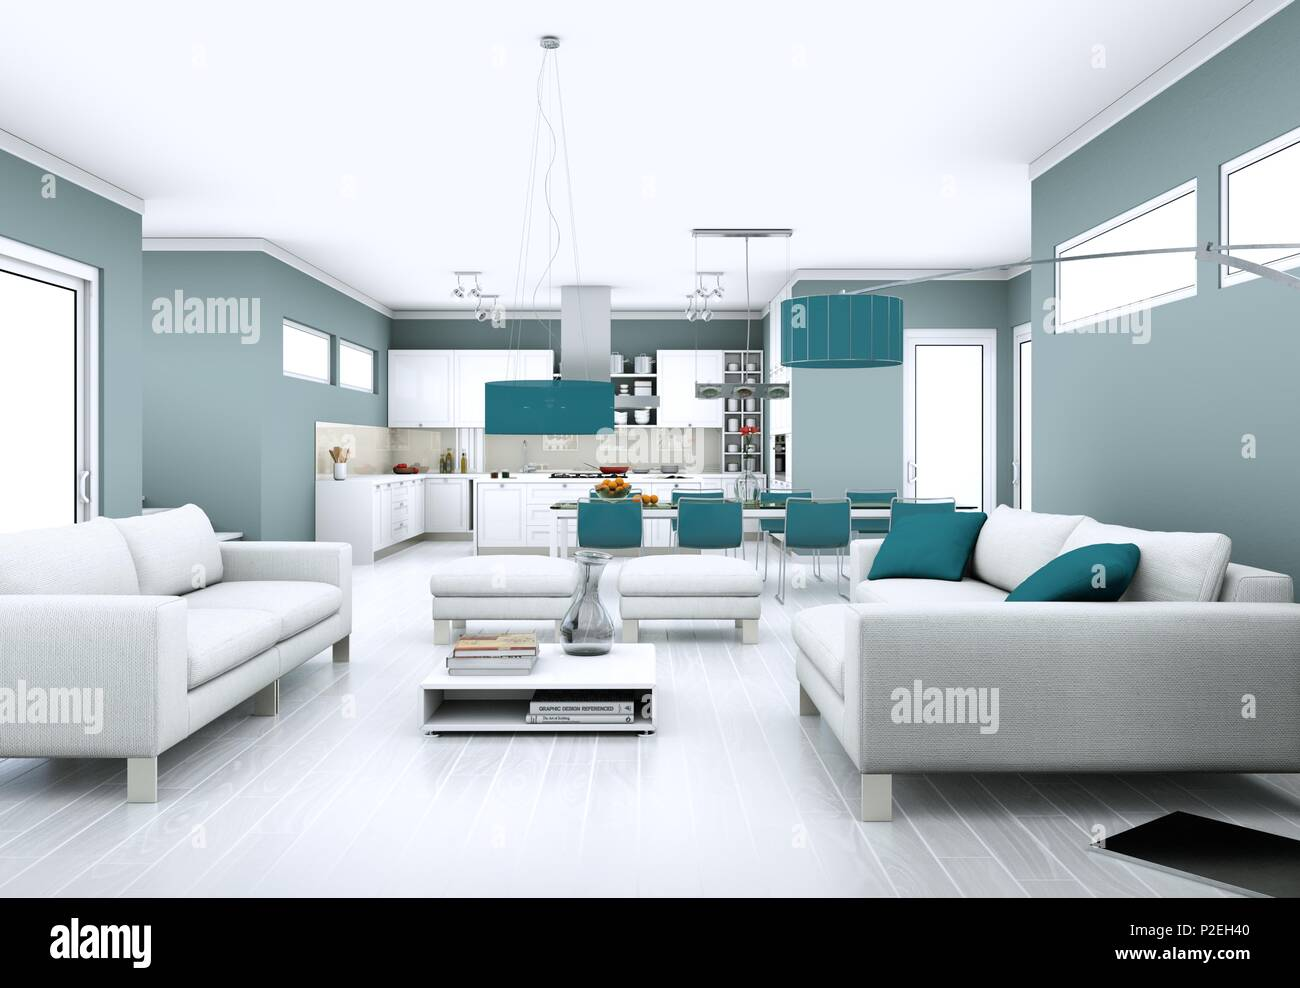 Modern bright living room interior design with sofas Stock Photo